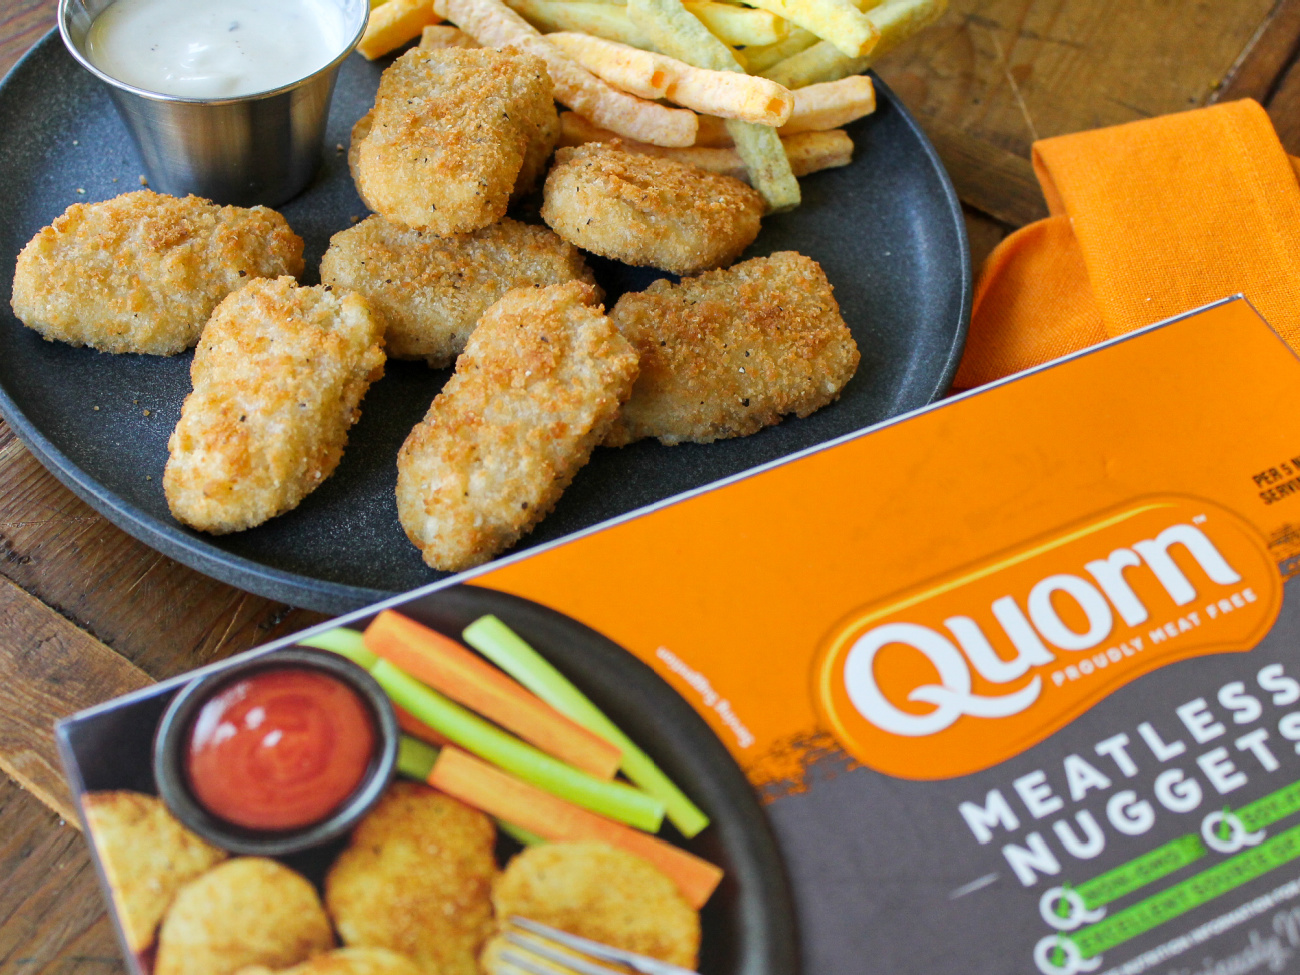 Super Deal On Quorn Meatless Products - Pay As Little As 99¢ At Publix on I Heart Publix